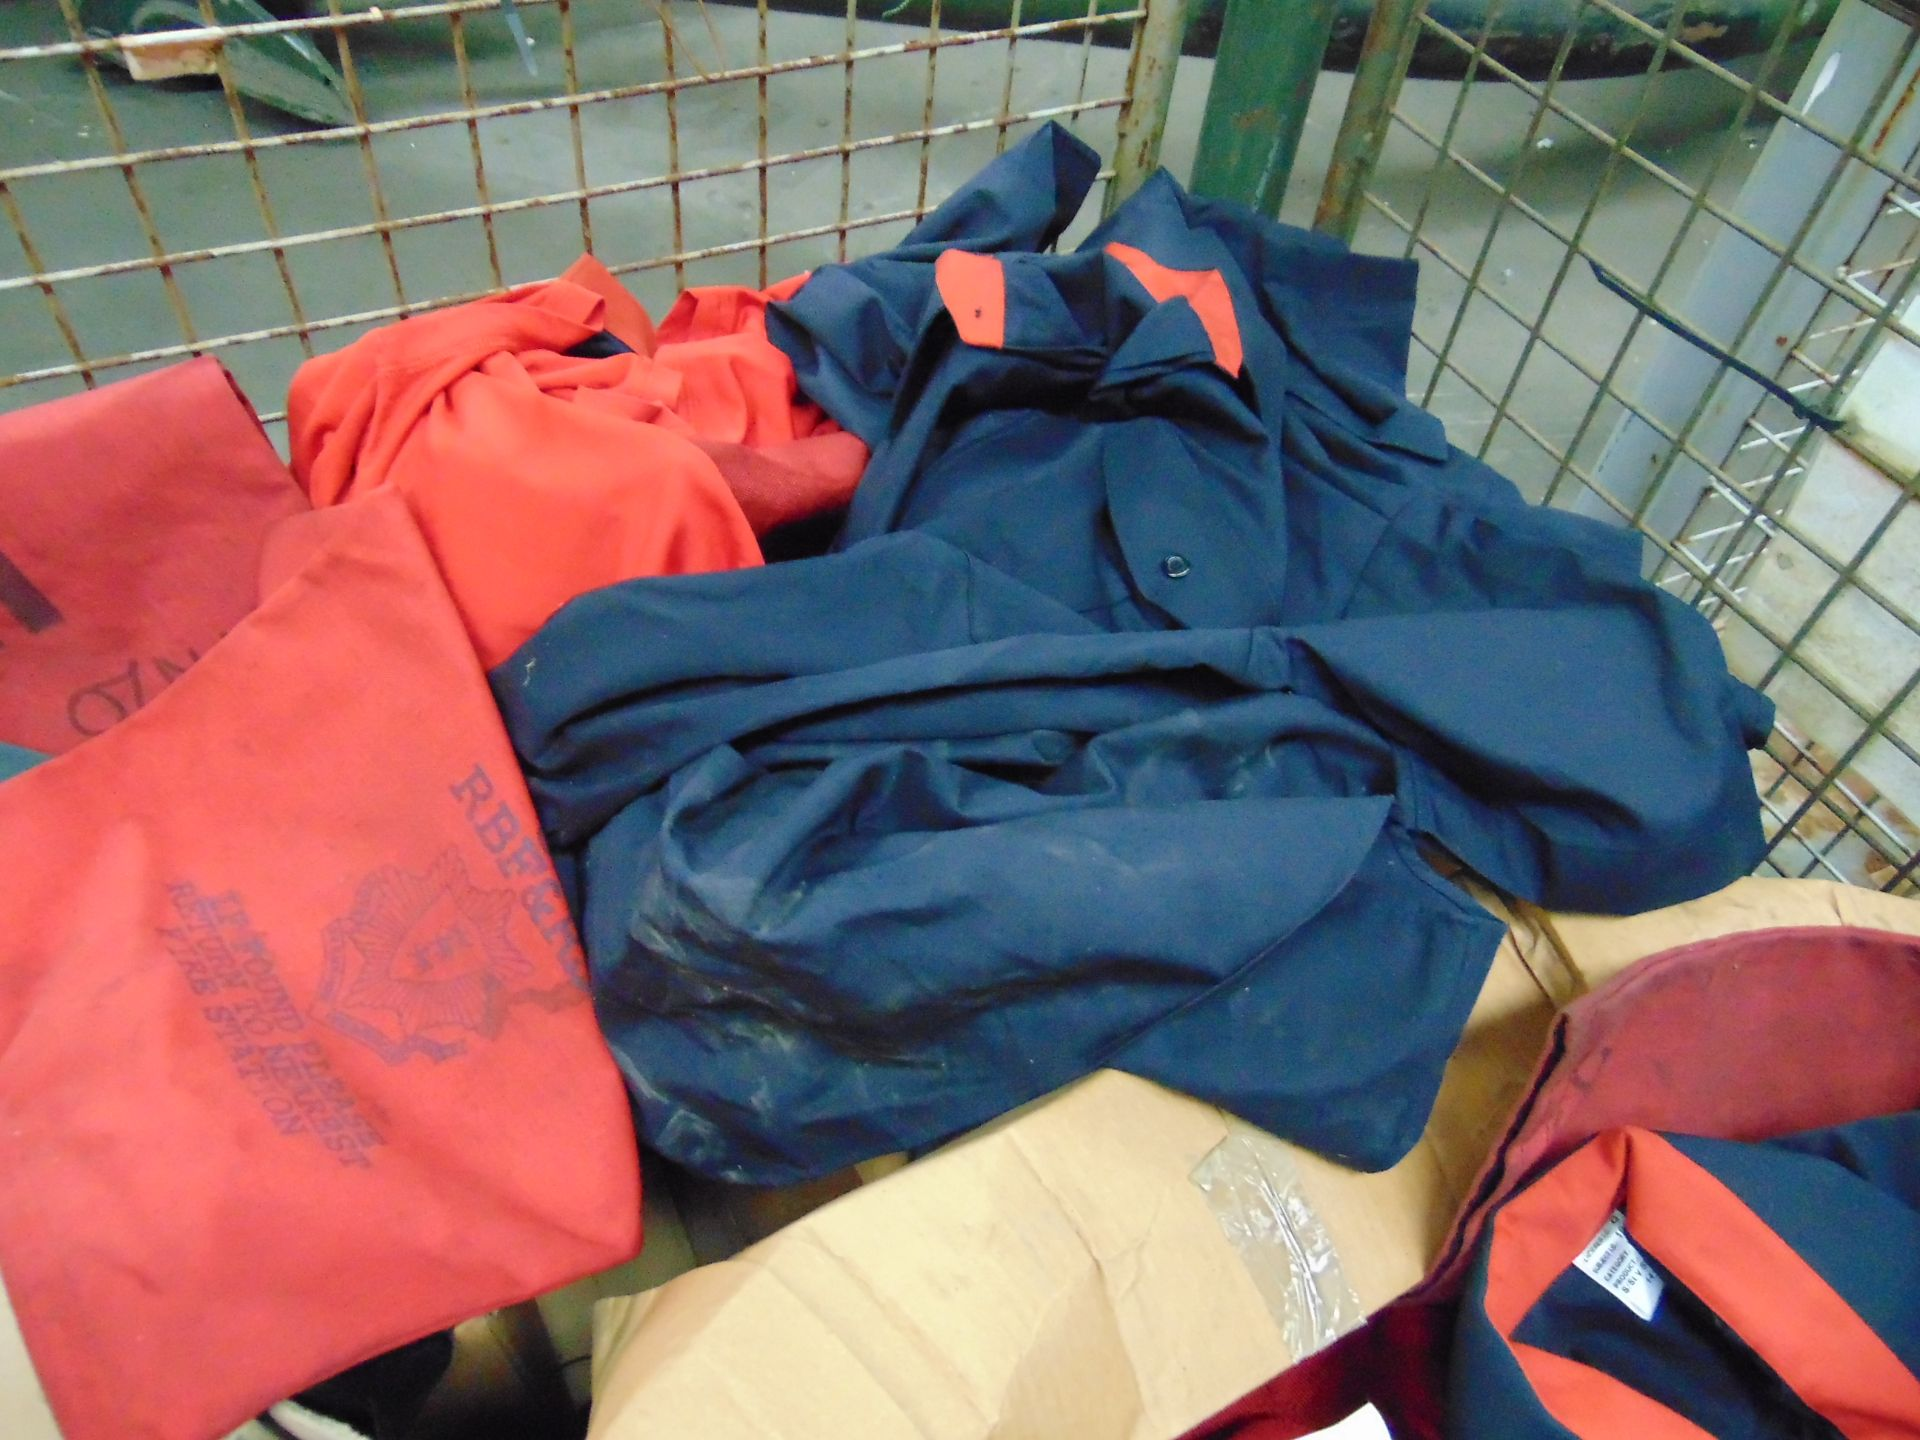 Mixed Clothing including Shirts, T shirts, Trousers, Fleece Jackets, Knee Pads Etc - Image 3 of 4